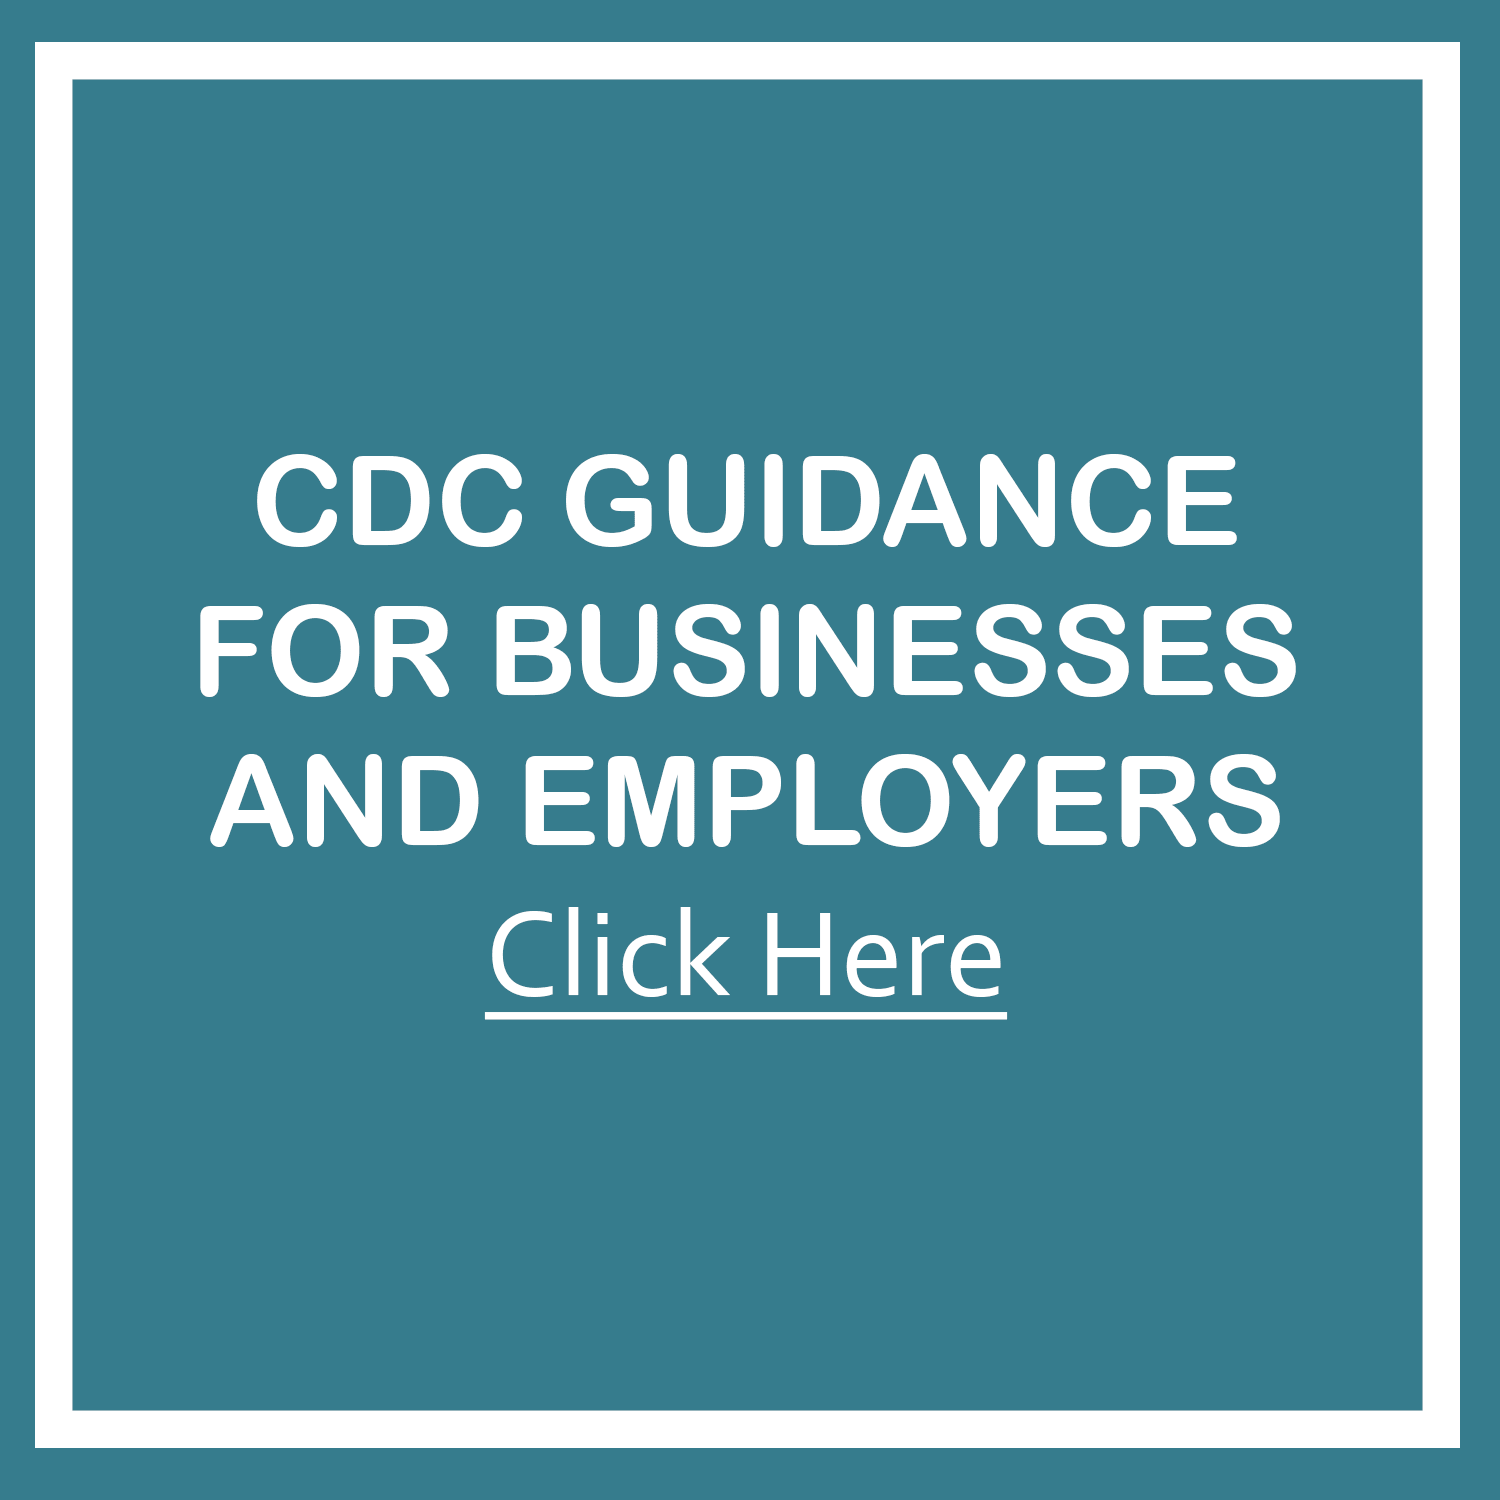 CDC guidnance for businesses